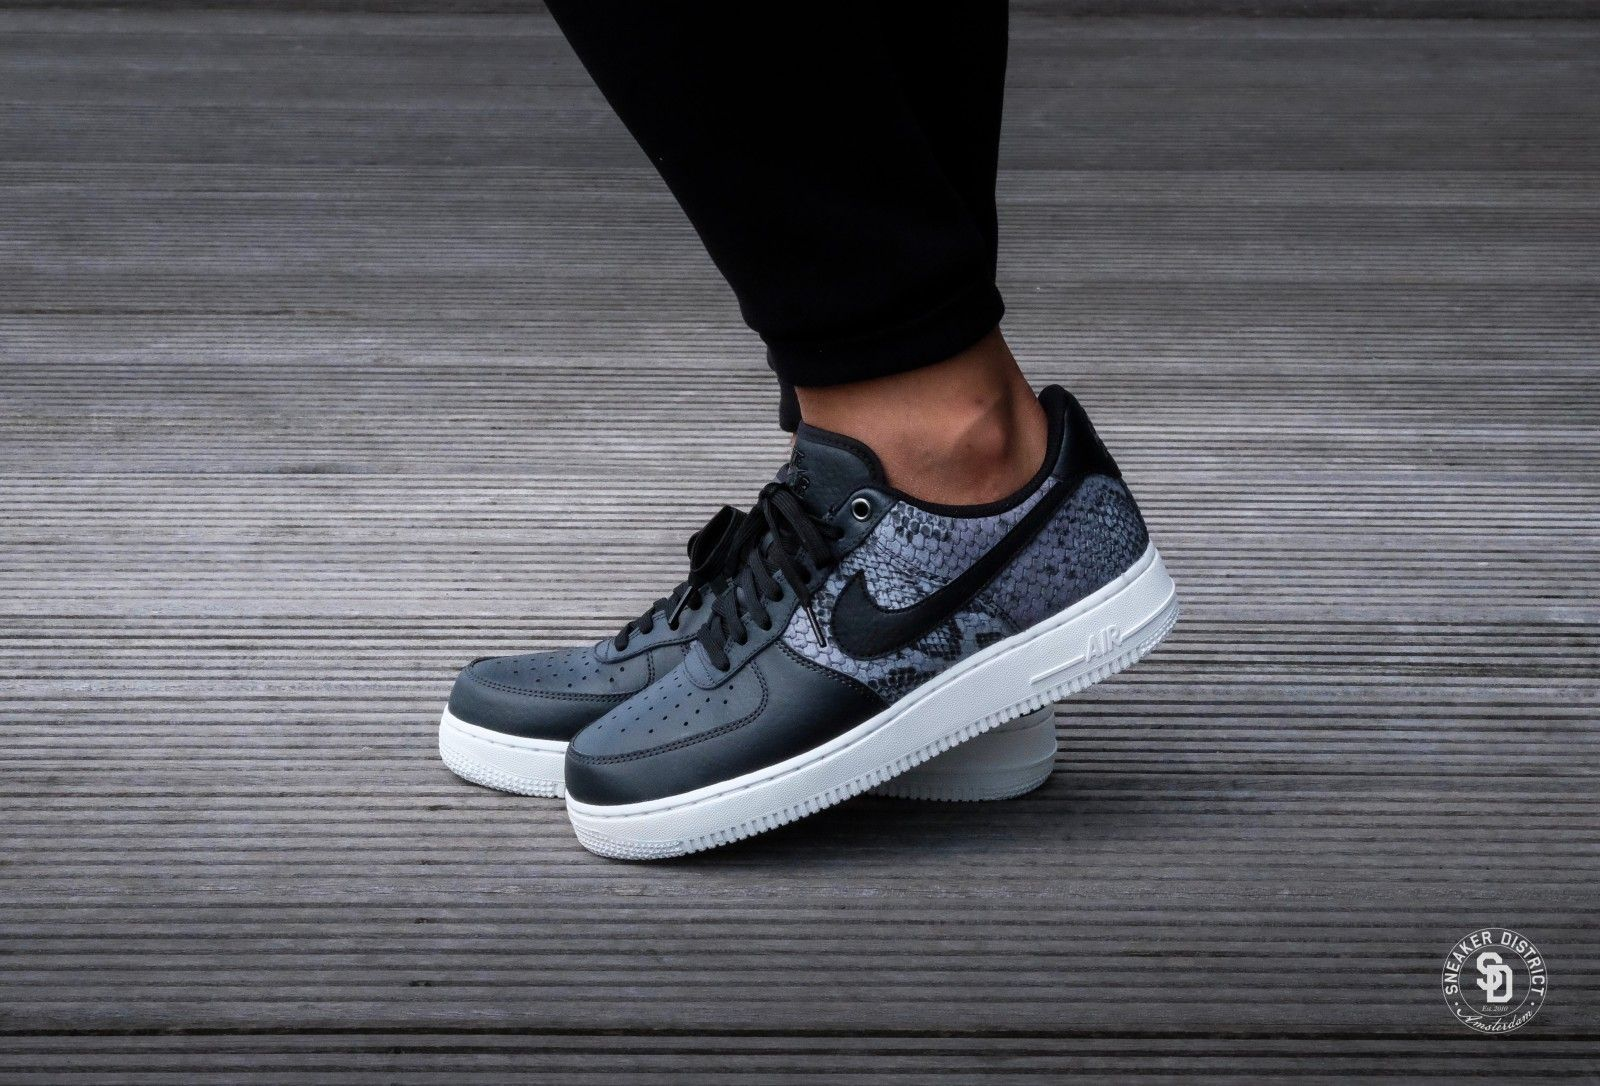 reputable site 990e4 5f913 Nike Air Force 1  07 LV8 Anthracite Black-Summit White - 823511-003